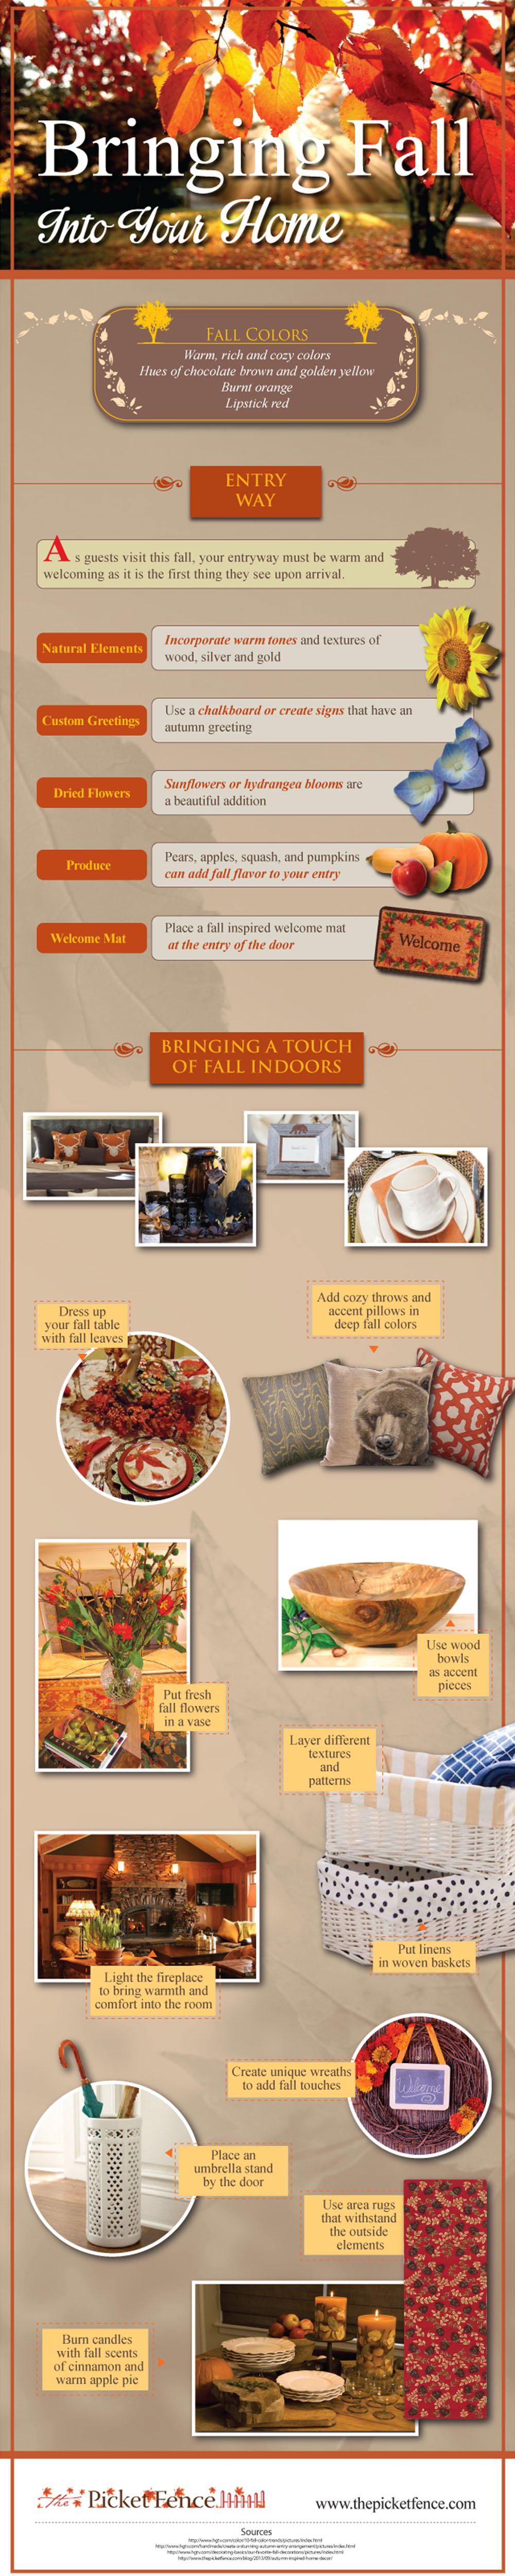 Bringing Fall Into Your Home